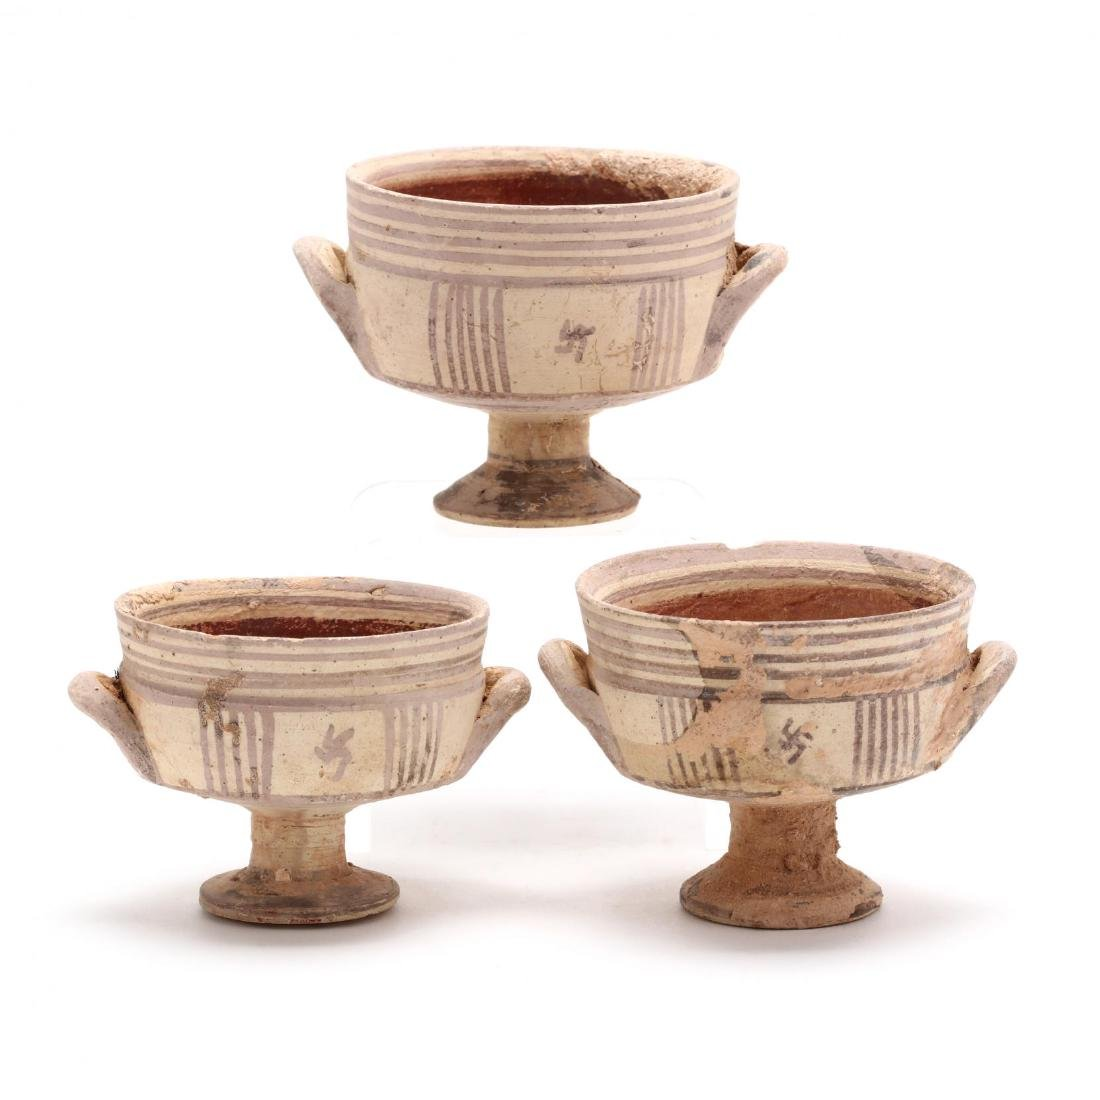 Three Conforming Cypro-Geometric Stemmed Cups